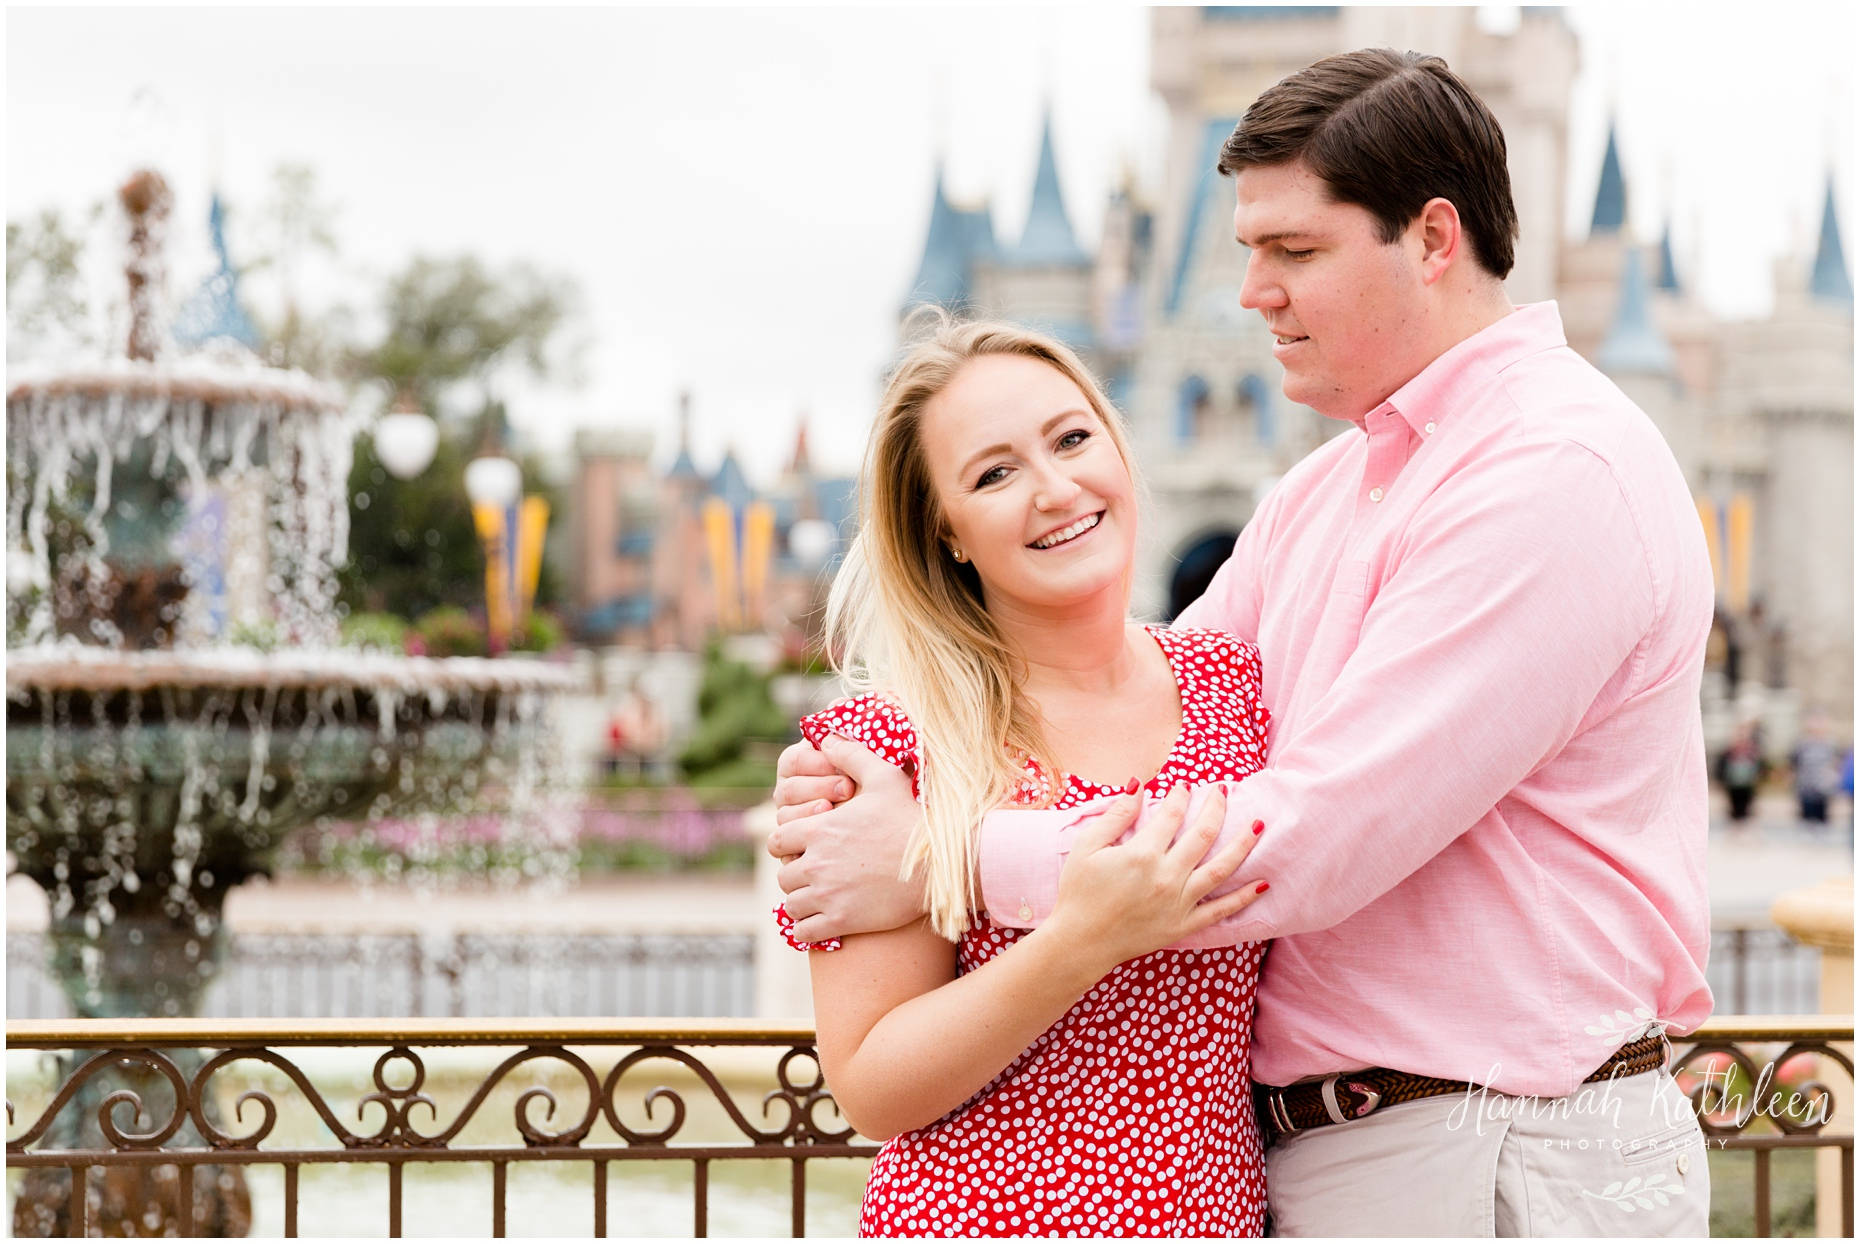 Jake_Kelly_Epcot_Magic_Kingdom_Disney_World_Engagement_Photography_Session